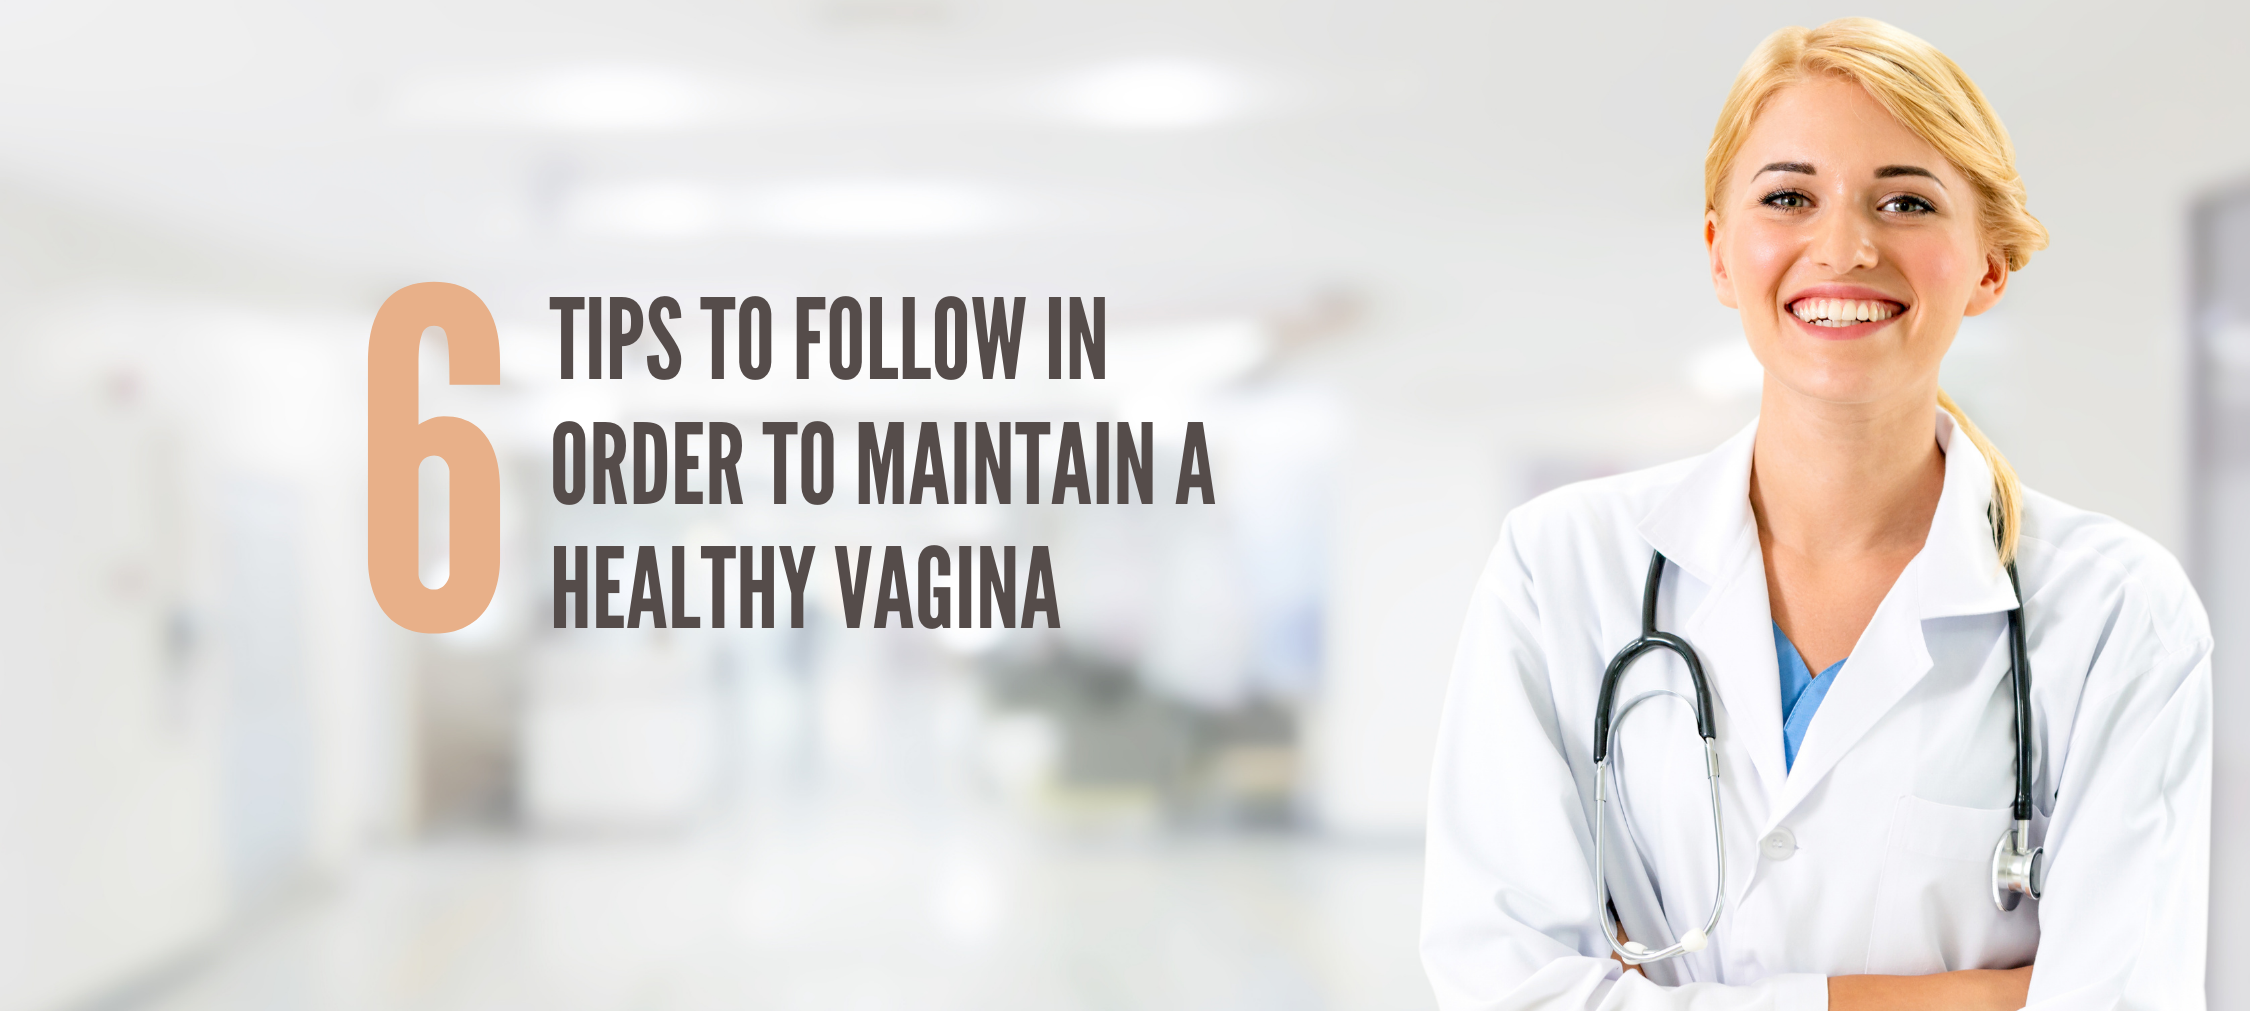 Maintain a Healthy Vagina